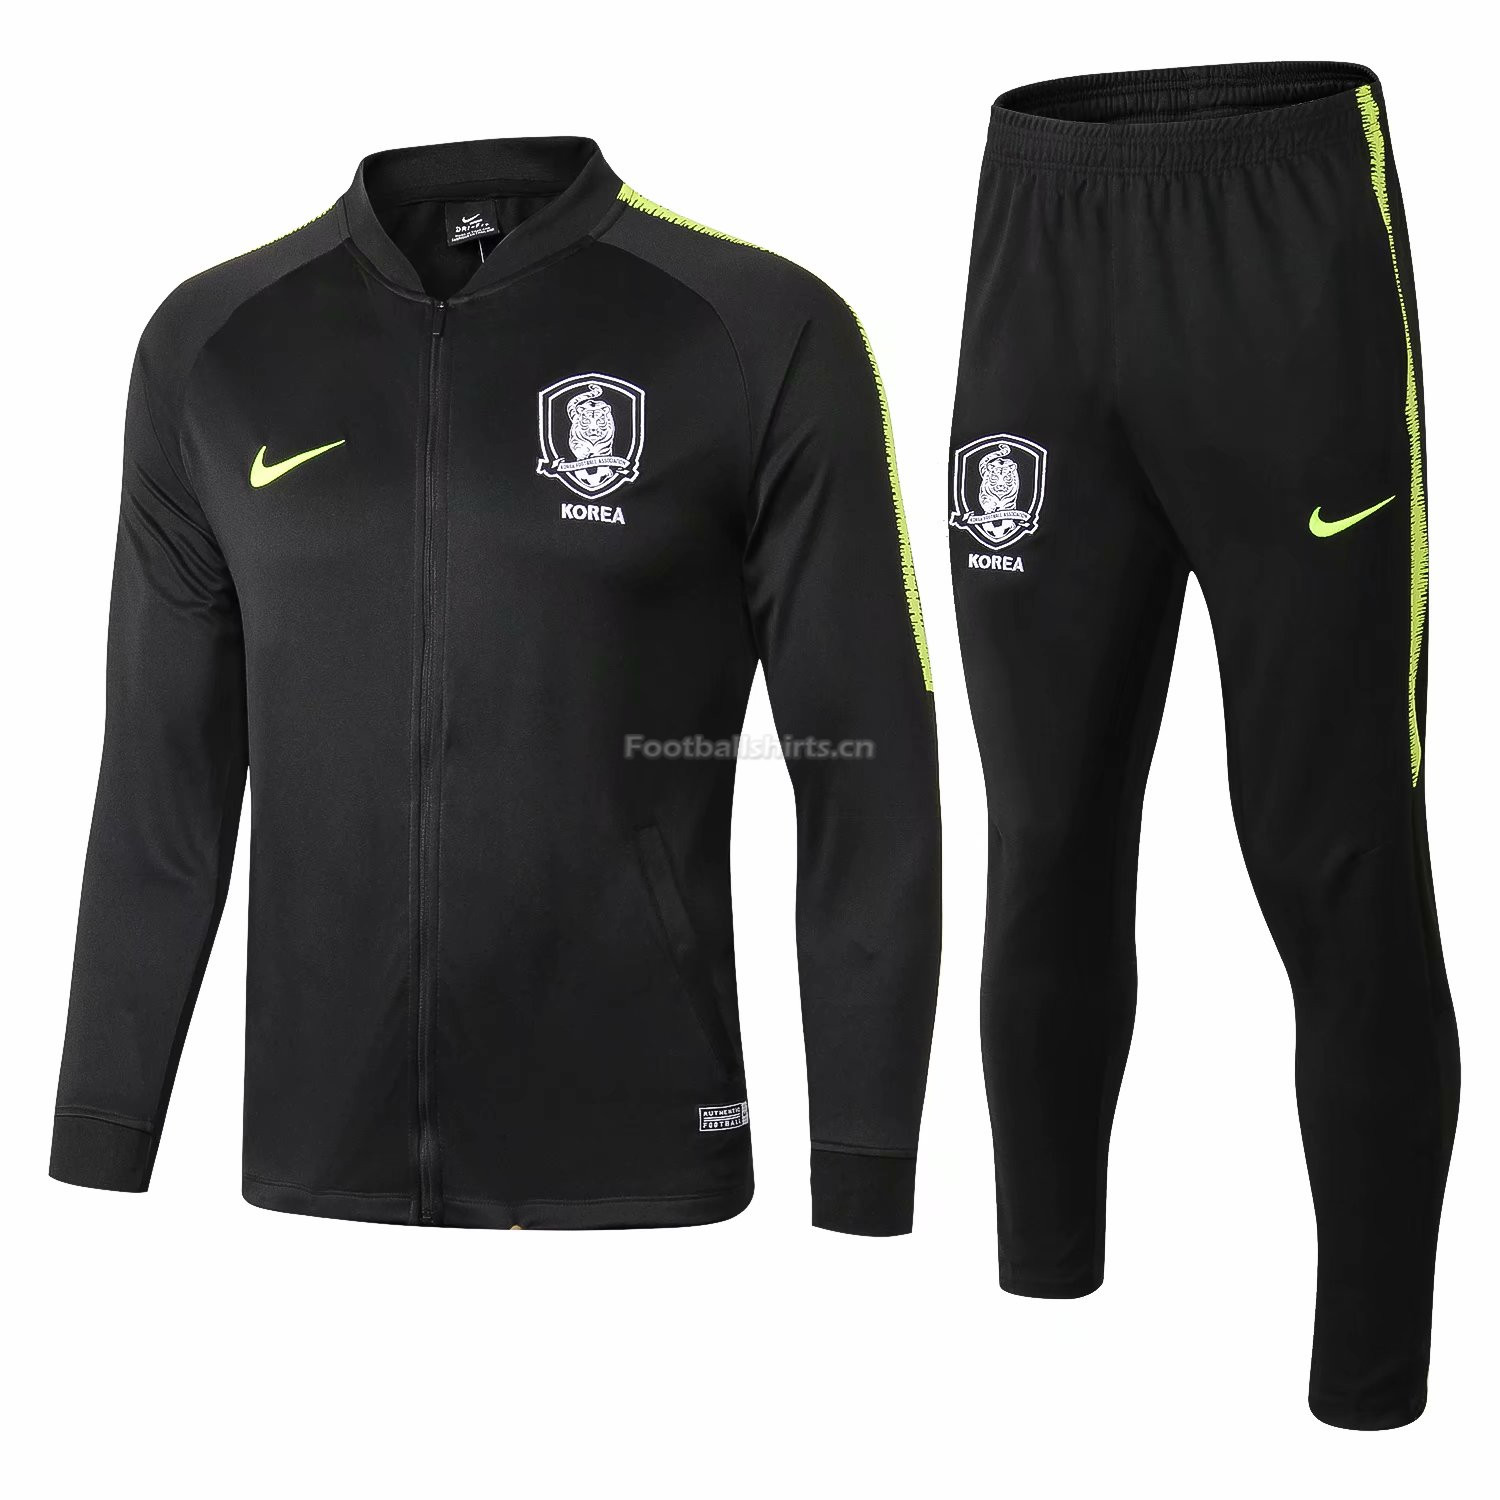 Korea Black Training Suit (Jacket+Trouser) 2018/19